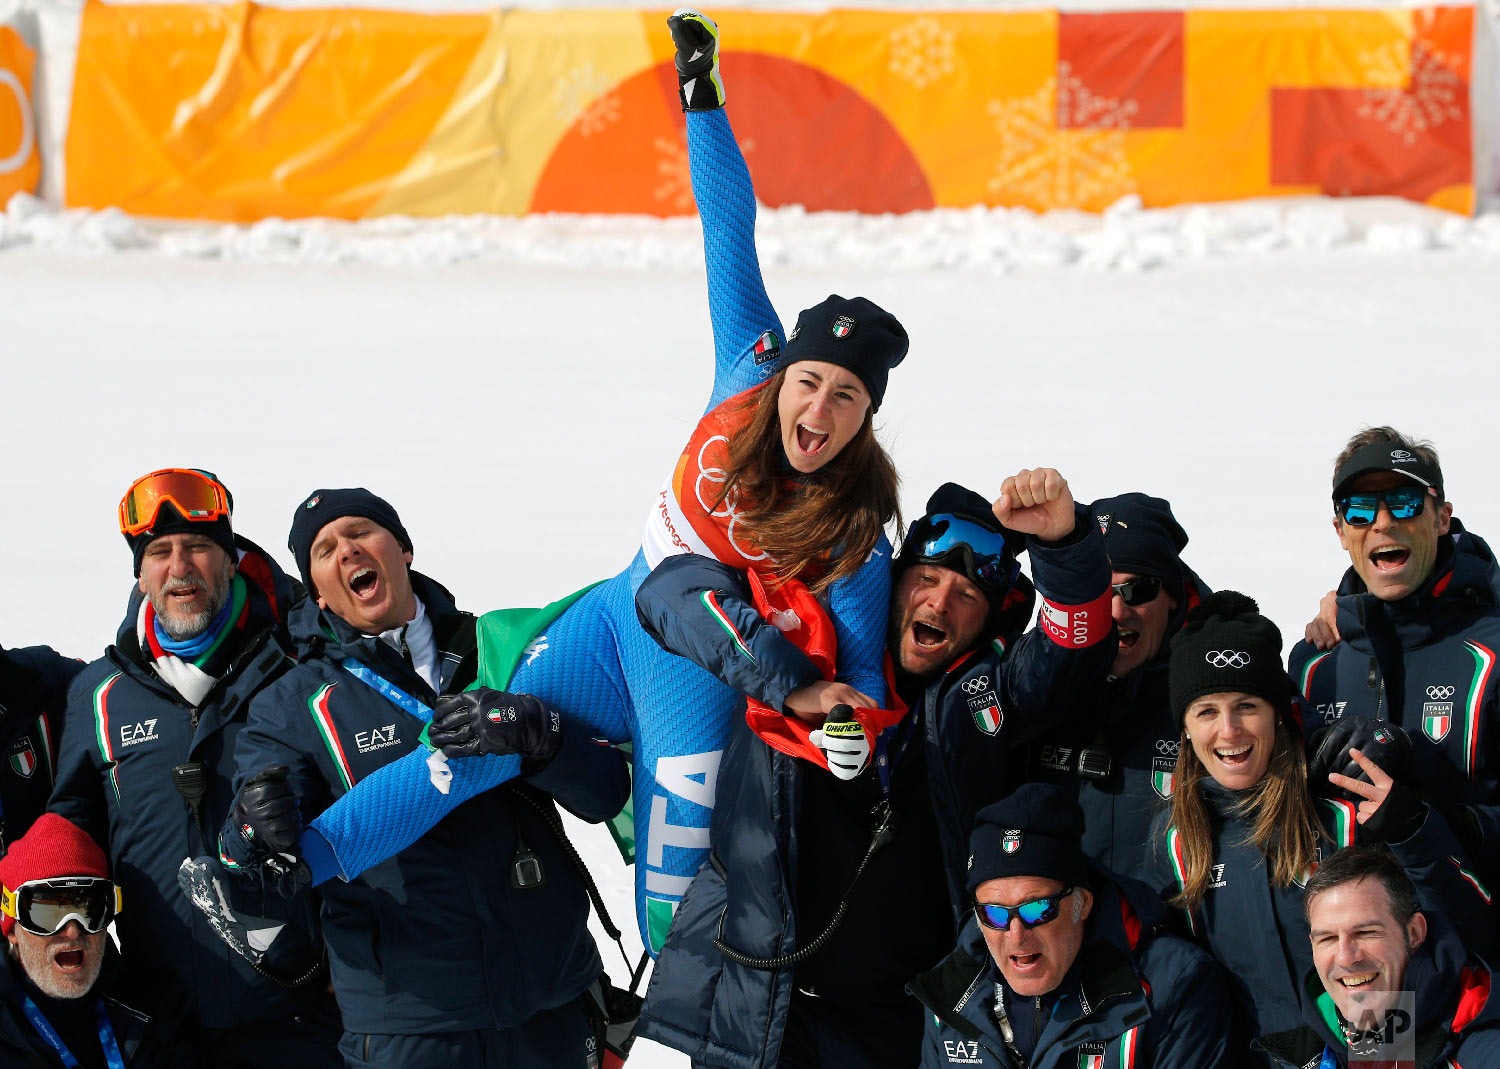 Gold medal winner Sofia Goggia, of Italy, celebrates after the flower ceremony for the women's downhill at the 2018 Winter Olympics in Jeongseon, South Korea, Wednesday, Feb. 21, 2018. (AP Photo/Christophe Ena)